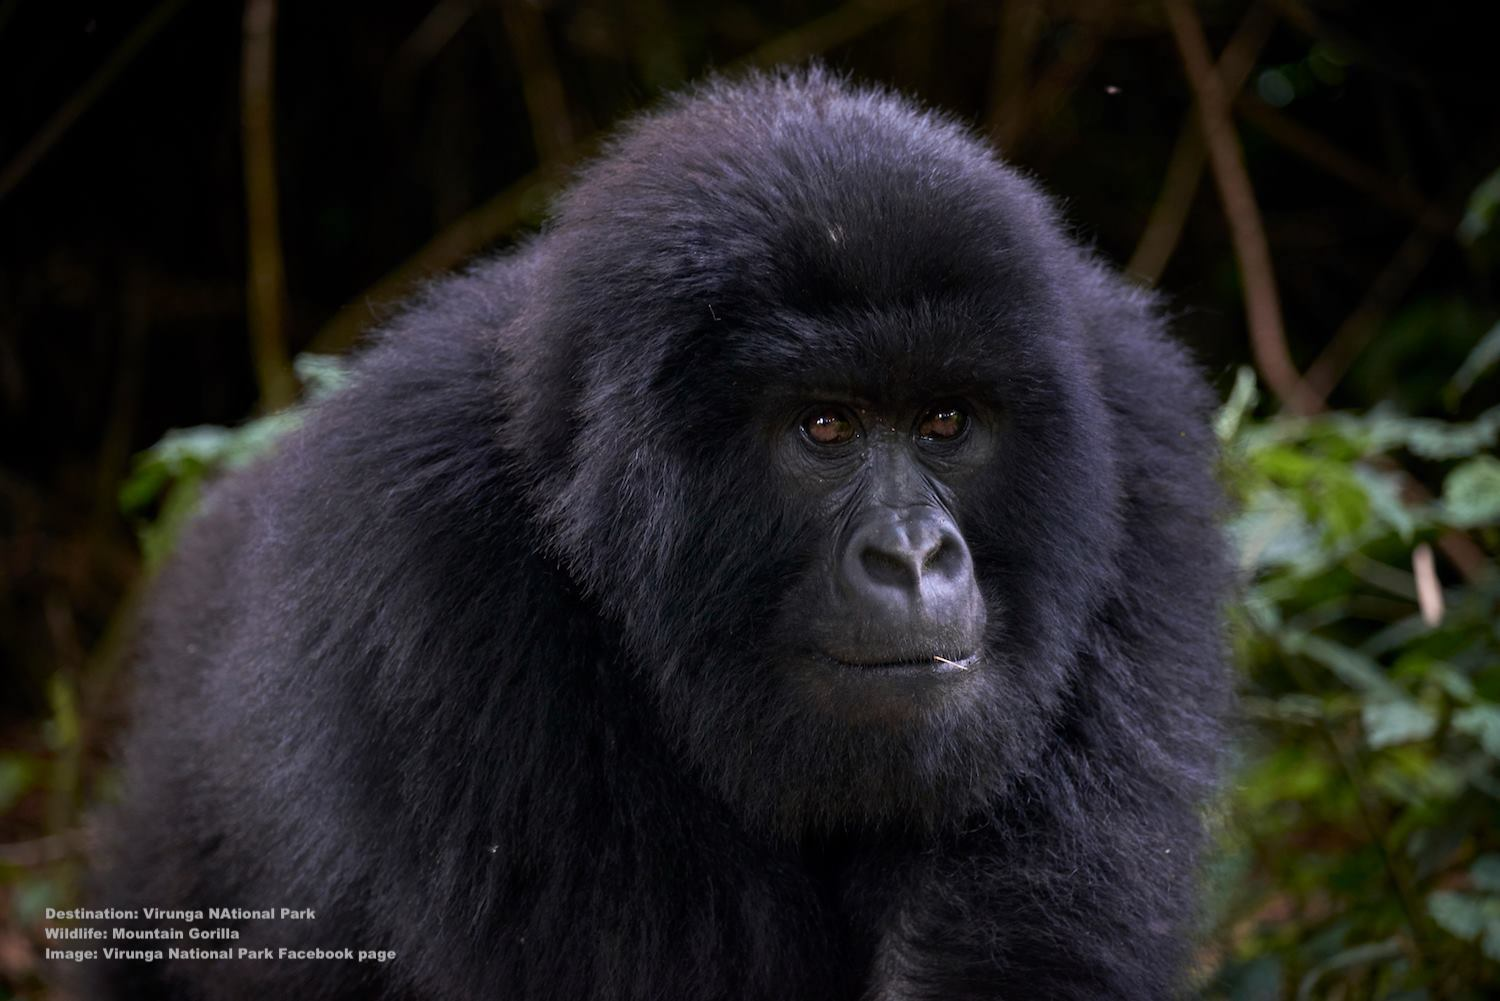 THE WORLD'S MOUNTAIN GORILLA POPULATION NUMBERED ONLY 620 INDIVIDUALS IN 1989, CONSERVATION AND HUMAN/WILDLIFE COEXISTENCE PROGRAMS HELPED THEM TO SURVIVE - SO FAR. BUT THEY AND SO MANY OTHER SPECIES ARE STILL IN DANGER, THEY NEED OUR HELP. IMAGE: VIRUNGA NATIONAL PARK FACEBOOK PAGE.